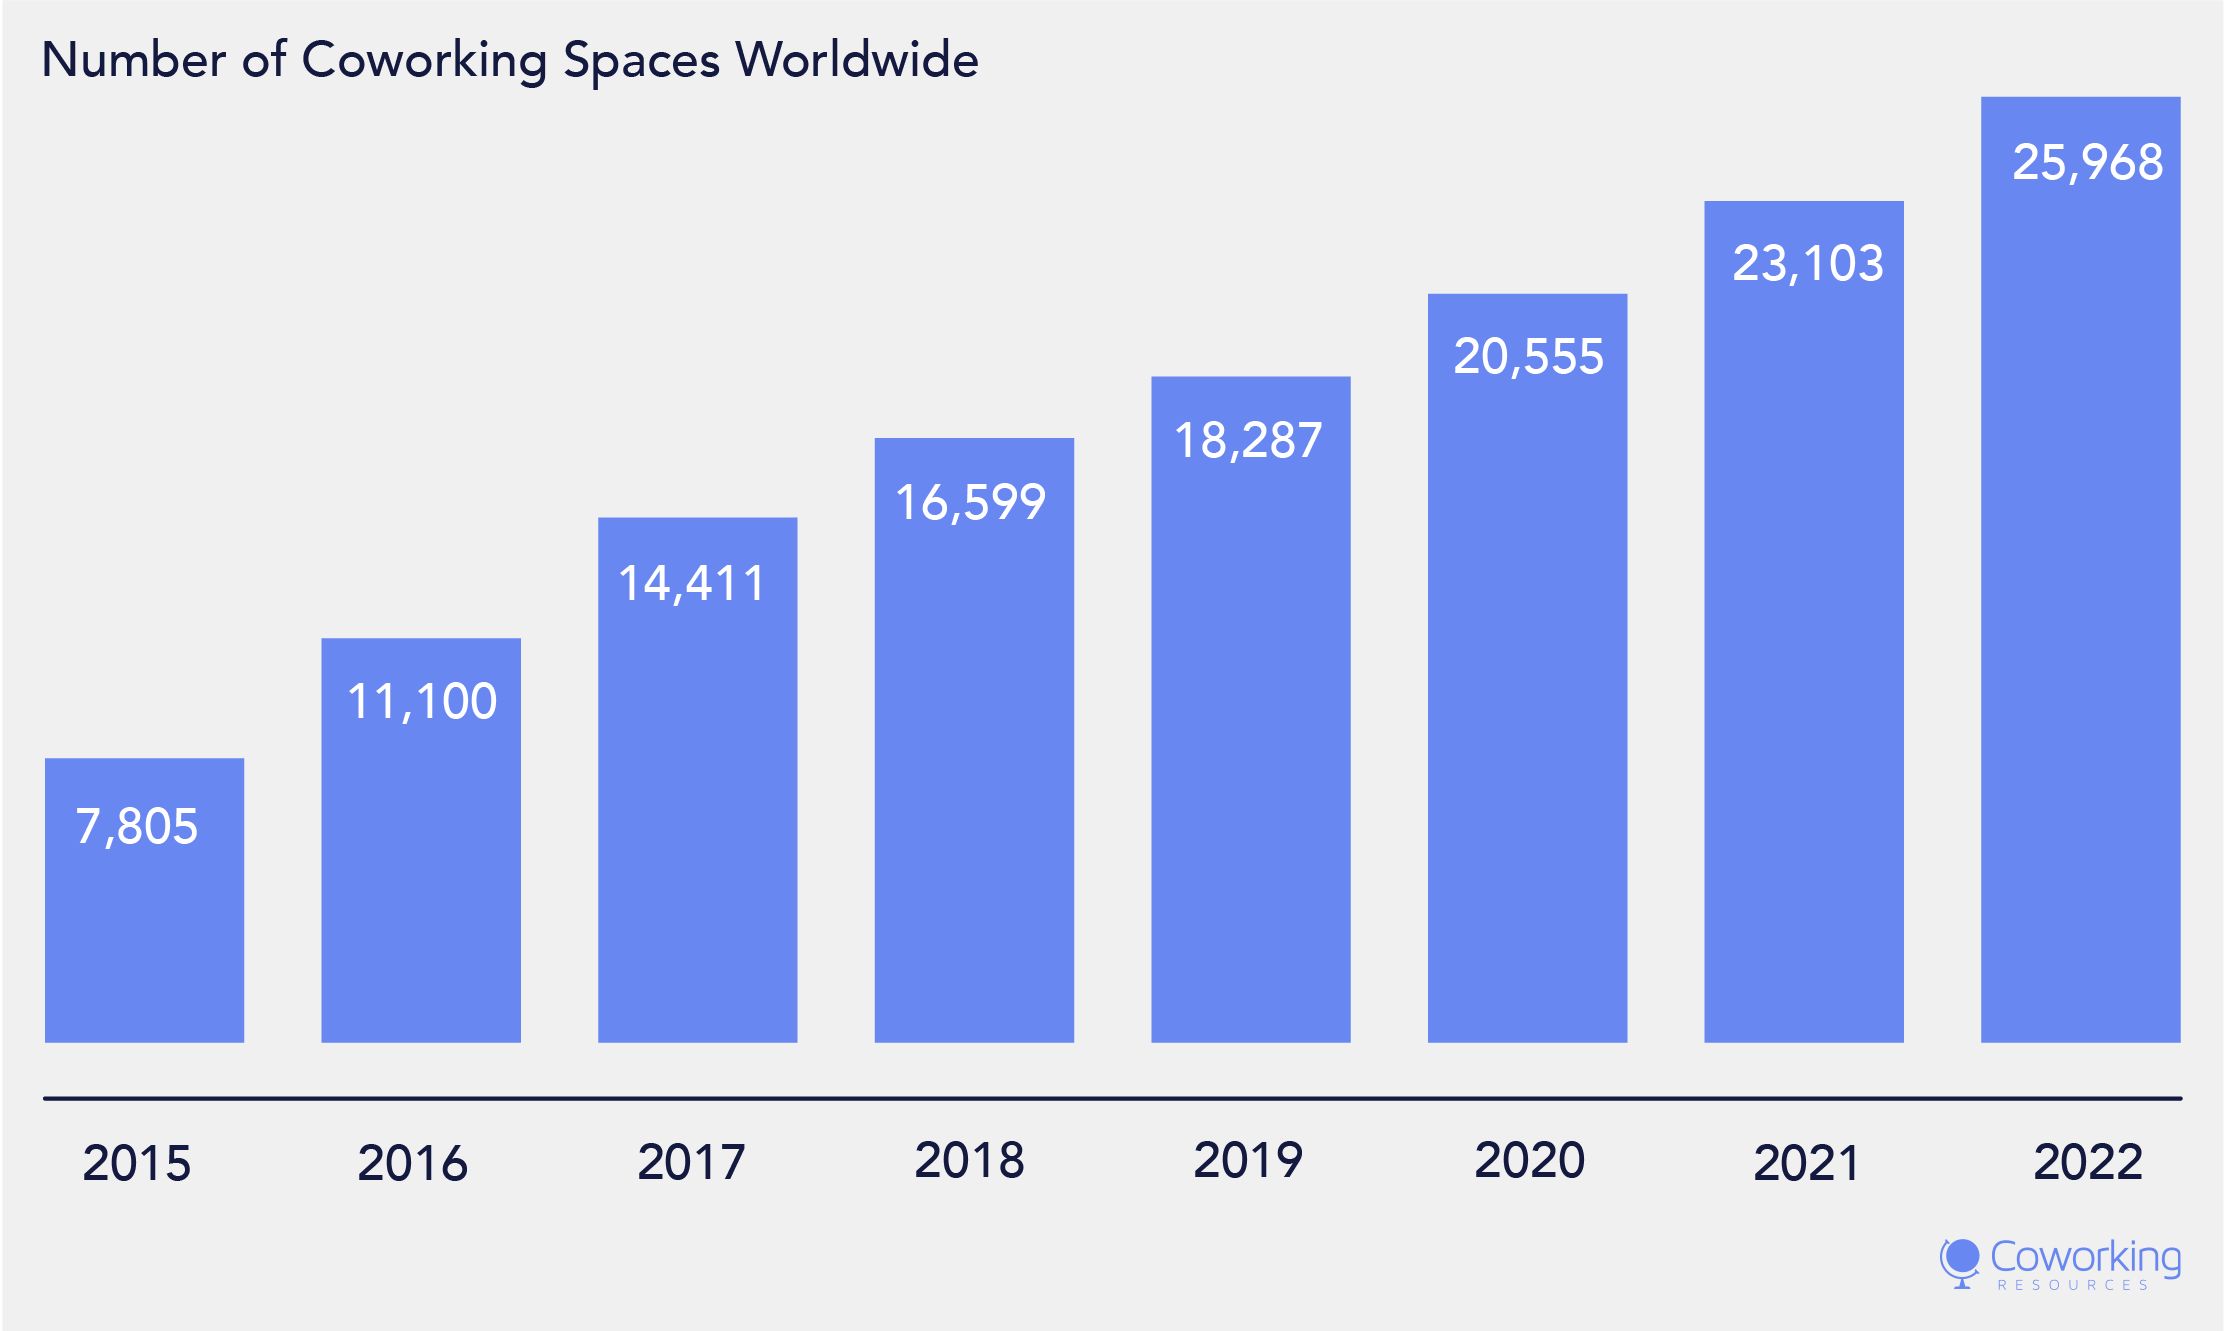 Number of coworking spaces expected exceed 25,000 worldwide by 2022